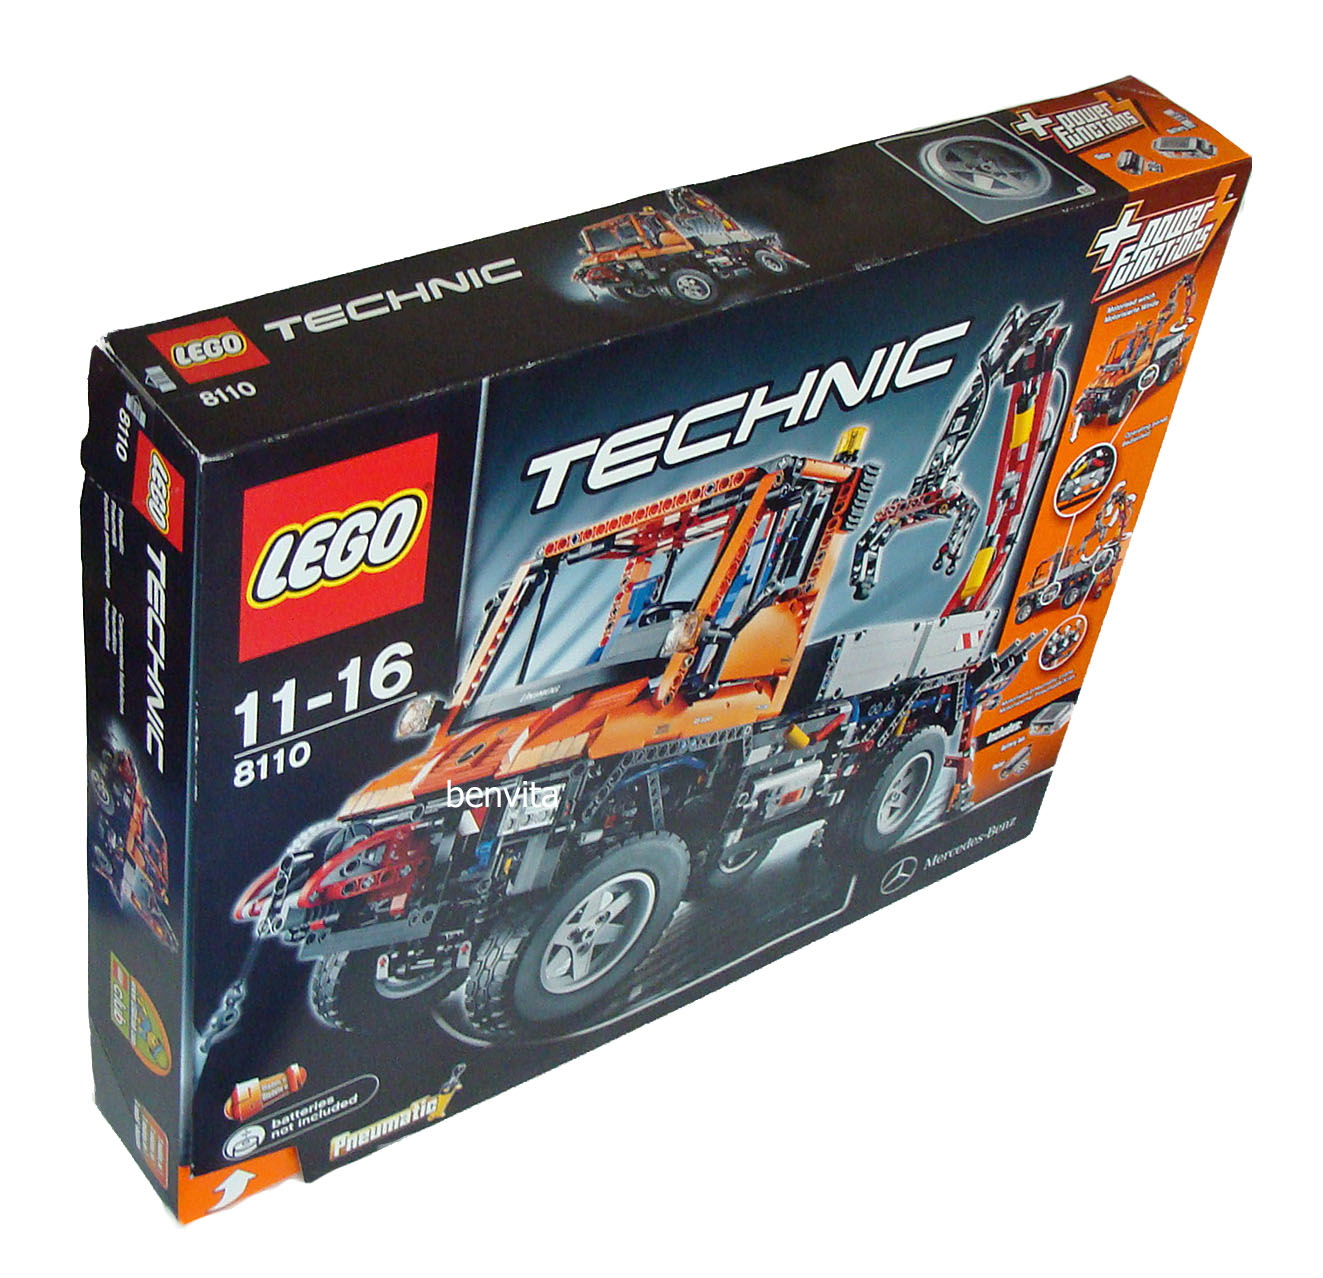 lego technic 8110 unimog u400 2048 teile 11 16 jahren. Black Bedroom Furniture Sets. Home Design Ideas